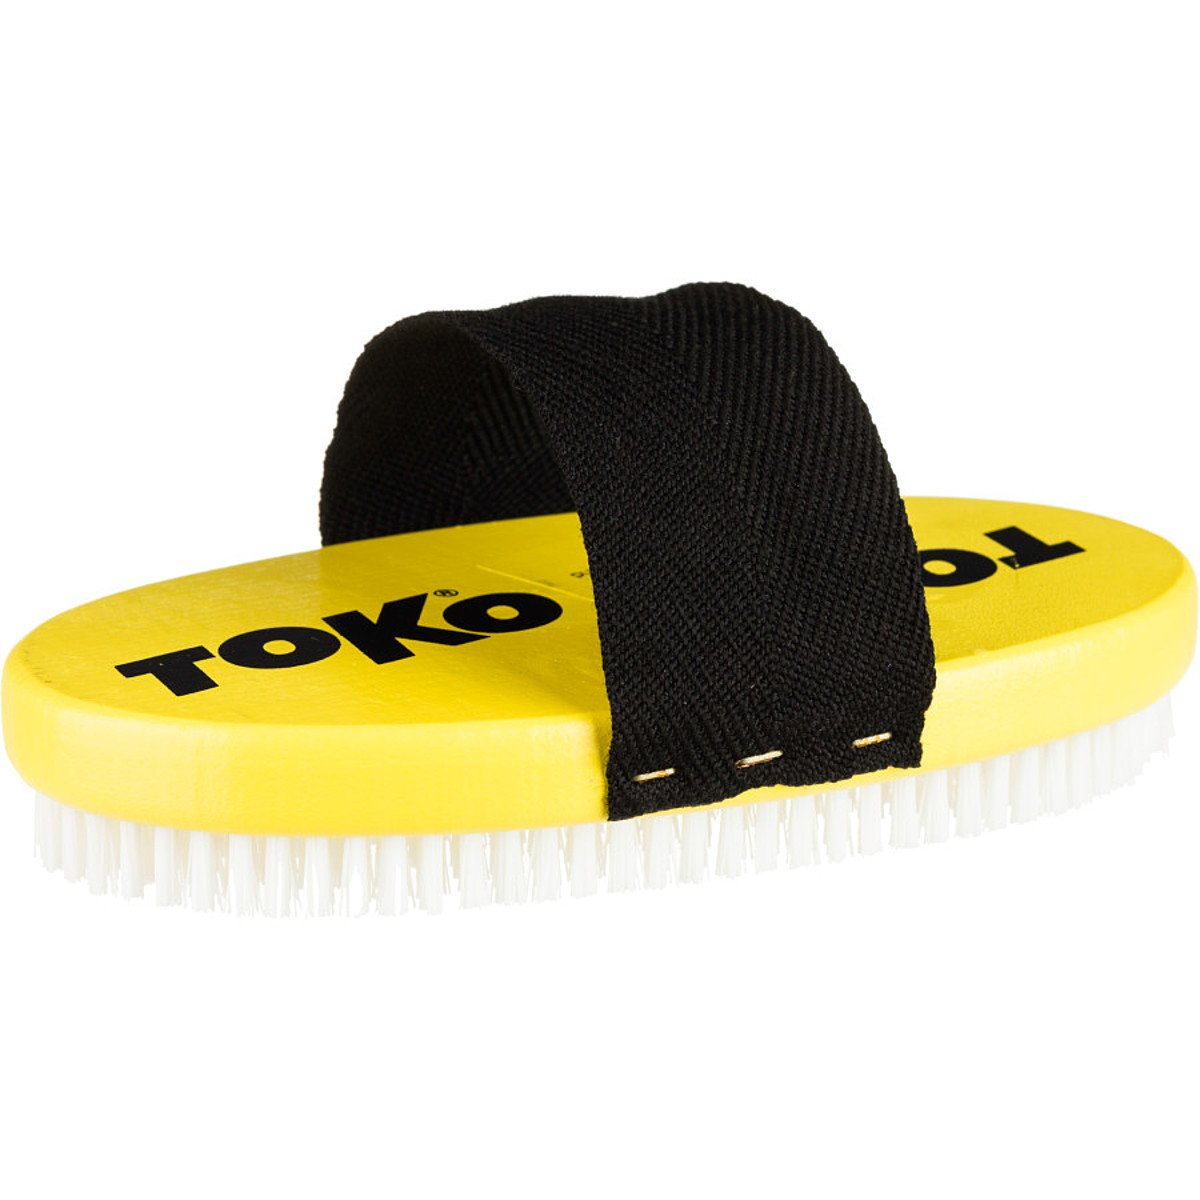 Toko Oval Brush Nylon